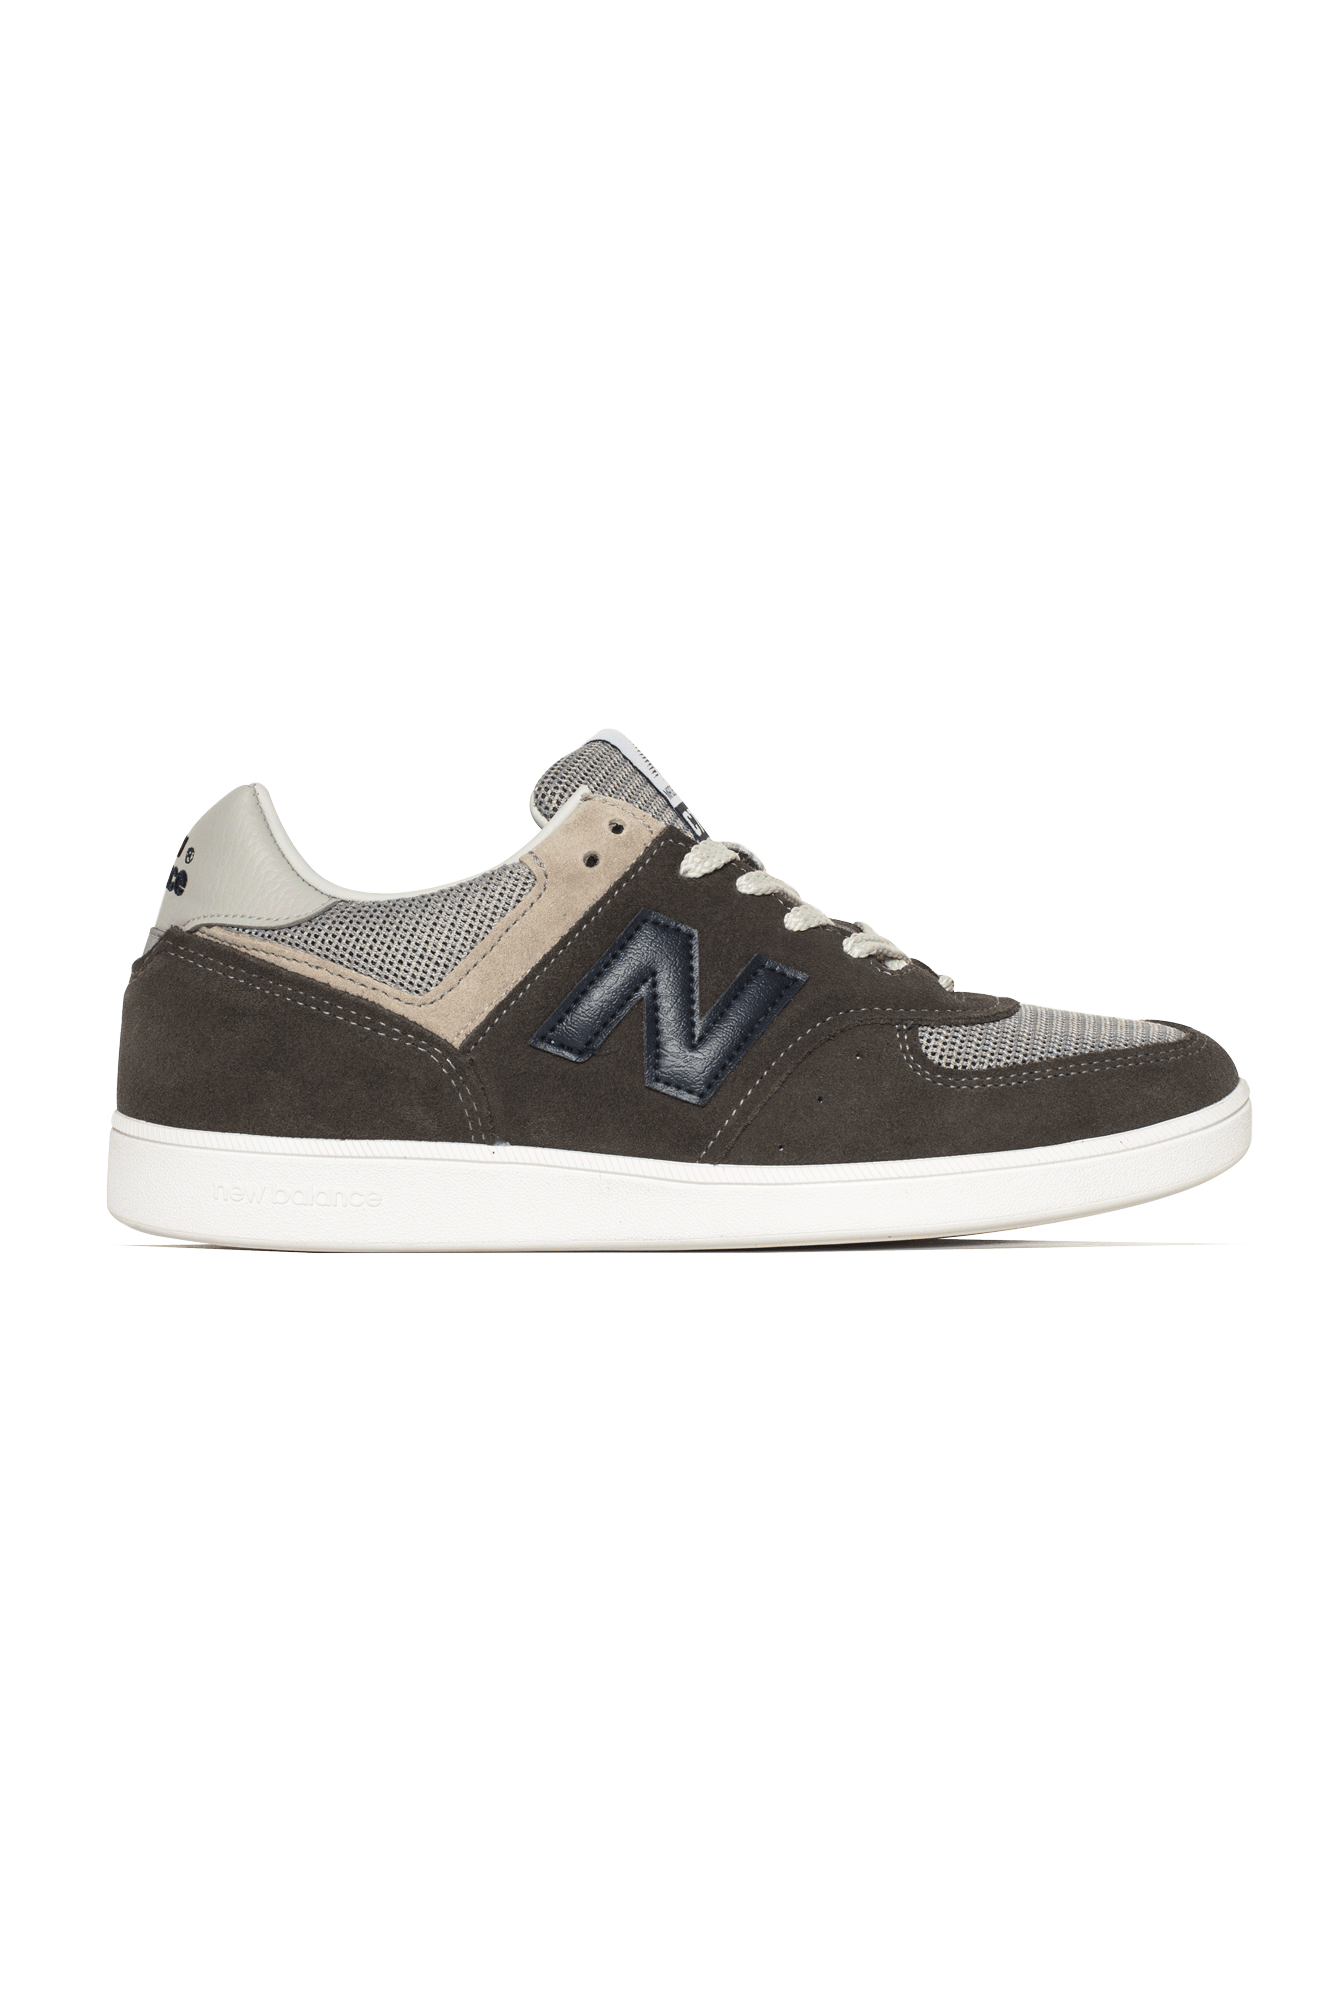 more photos 66cee 7be0f New Balance Sneakers 576 Grey CT576OGGD#000#C0009#7,5 - One Block Down